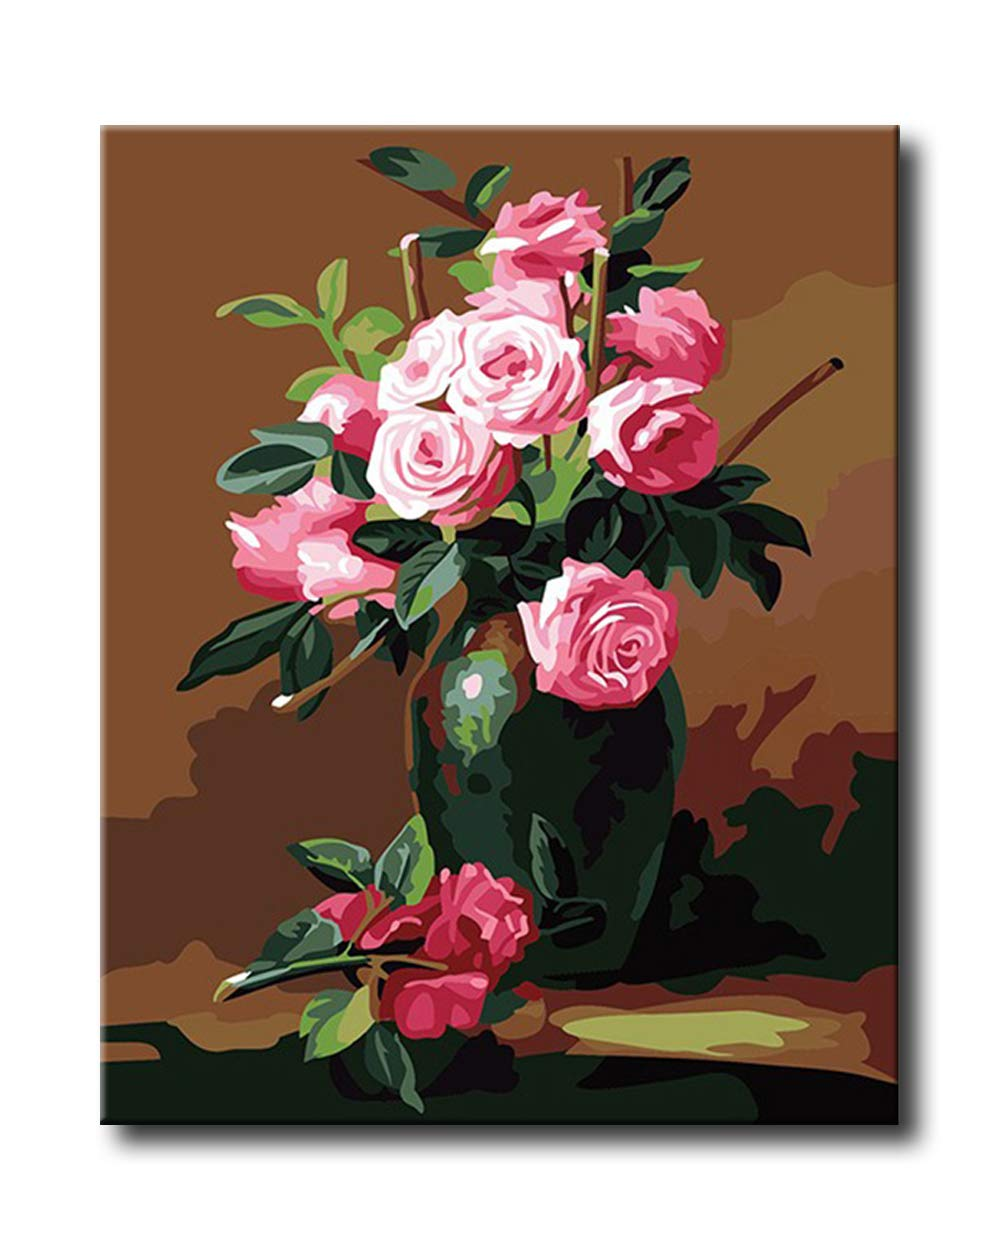 Shukqueen DIY Paint by Numbers for Adults DIY Oil Painting Kit for Kids Beginner - Pink Rose 16x20 Inch (Without Frame)